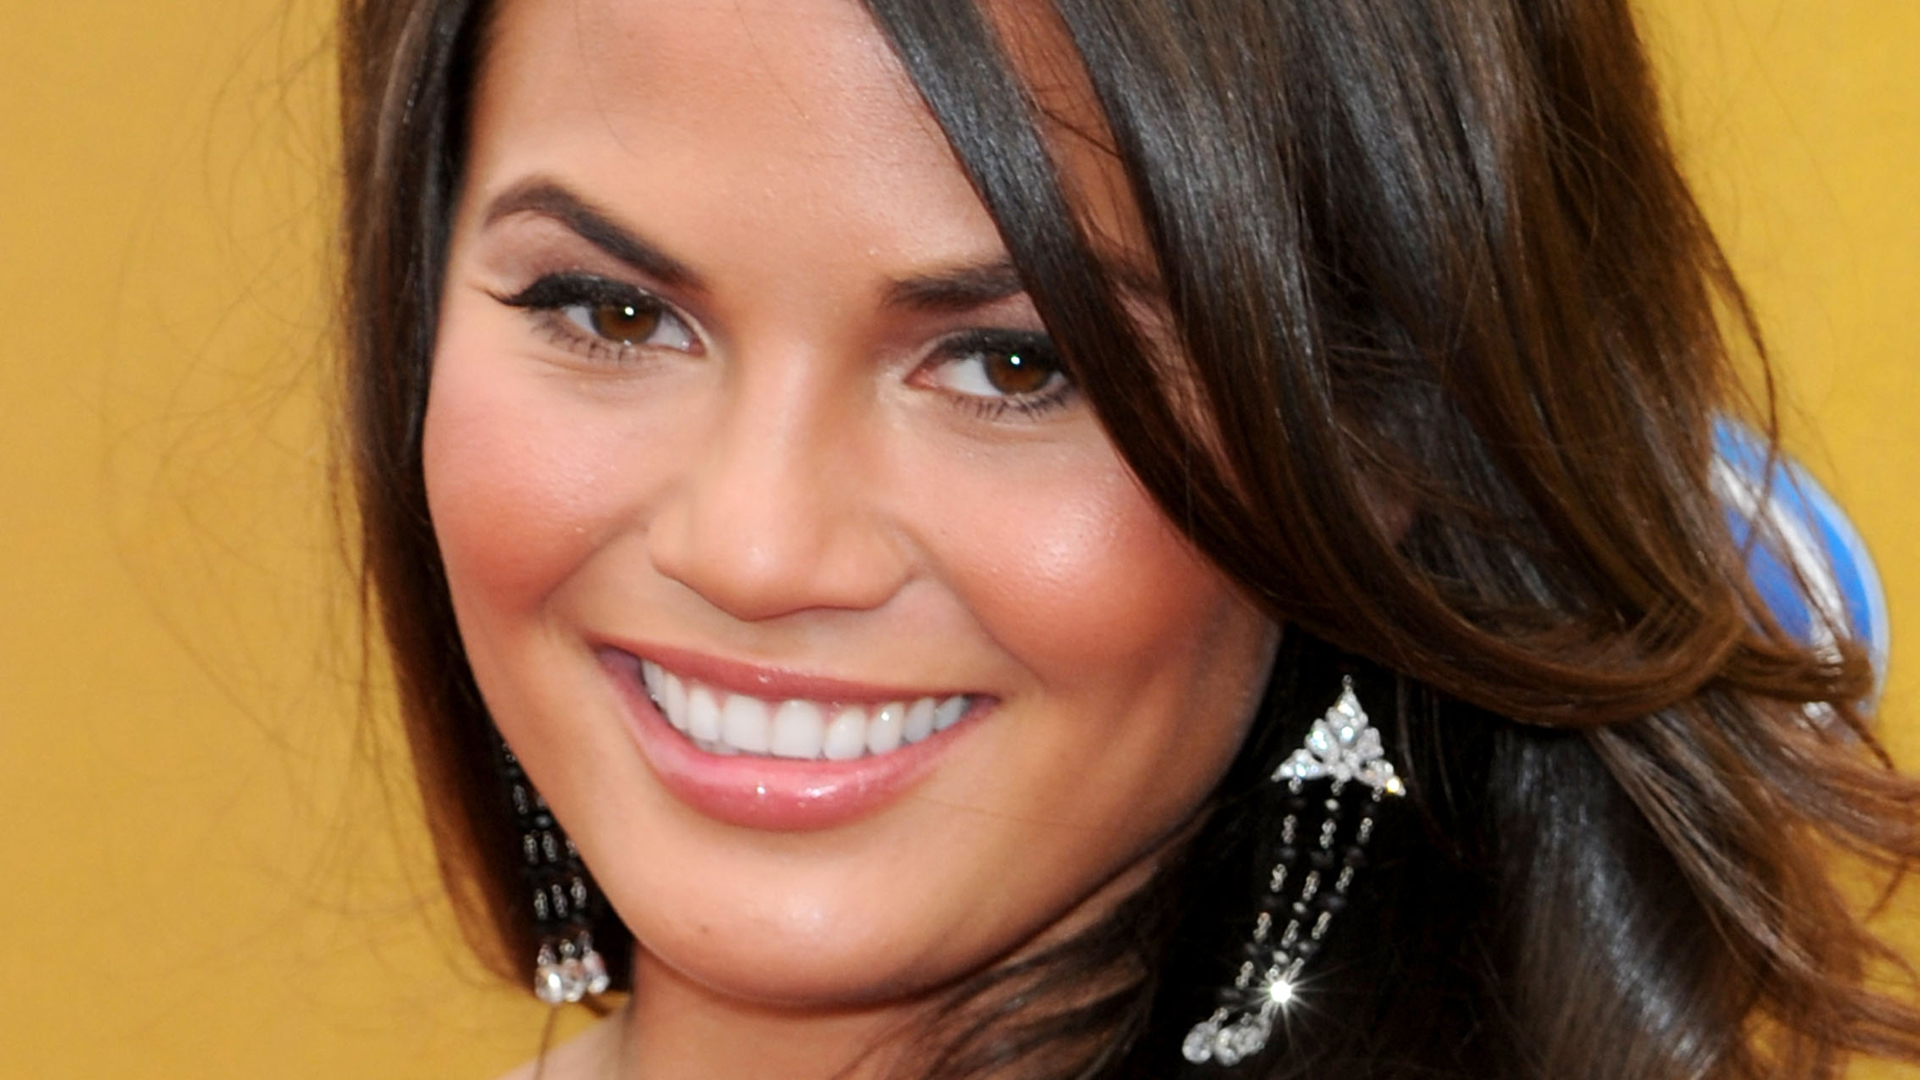 What Chrissy Teigen was like before the fame